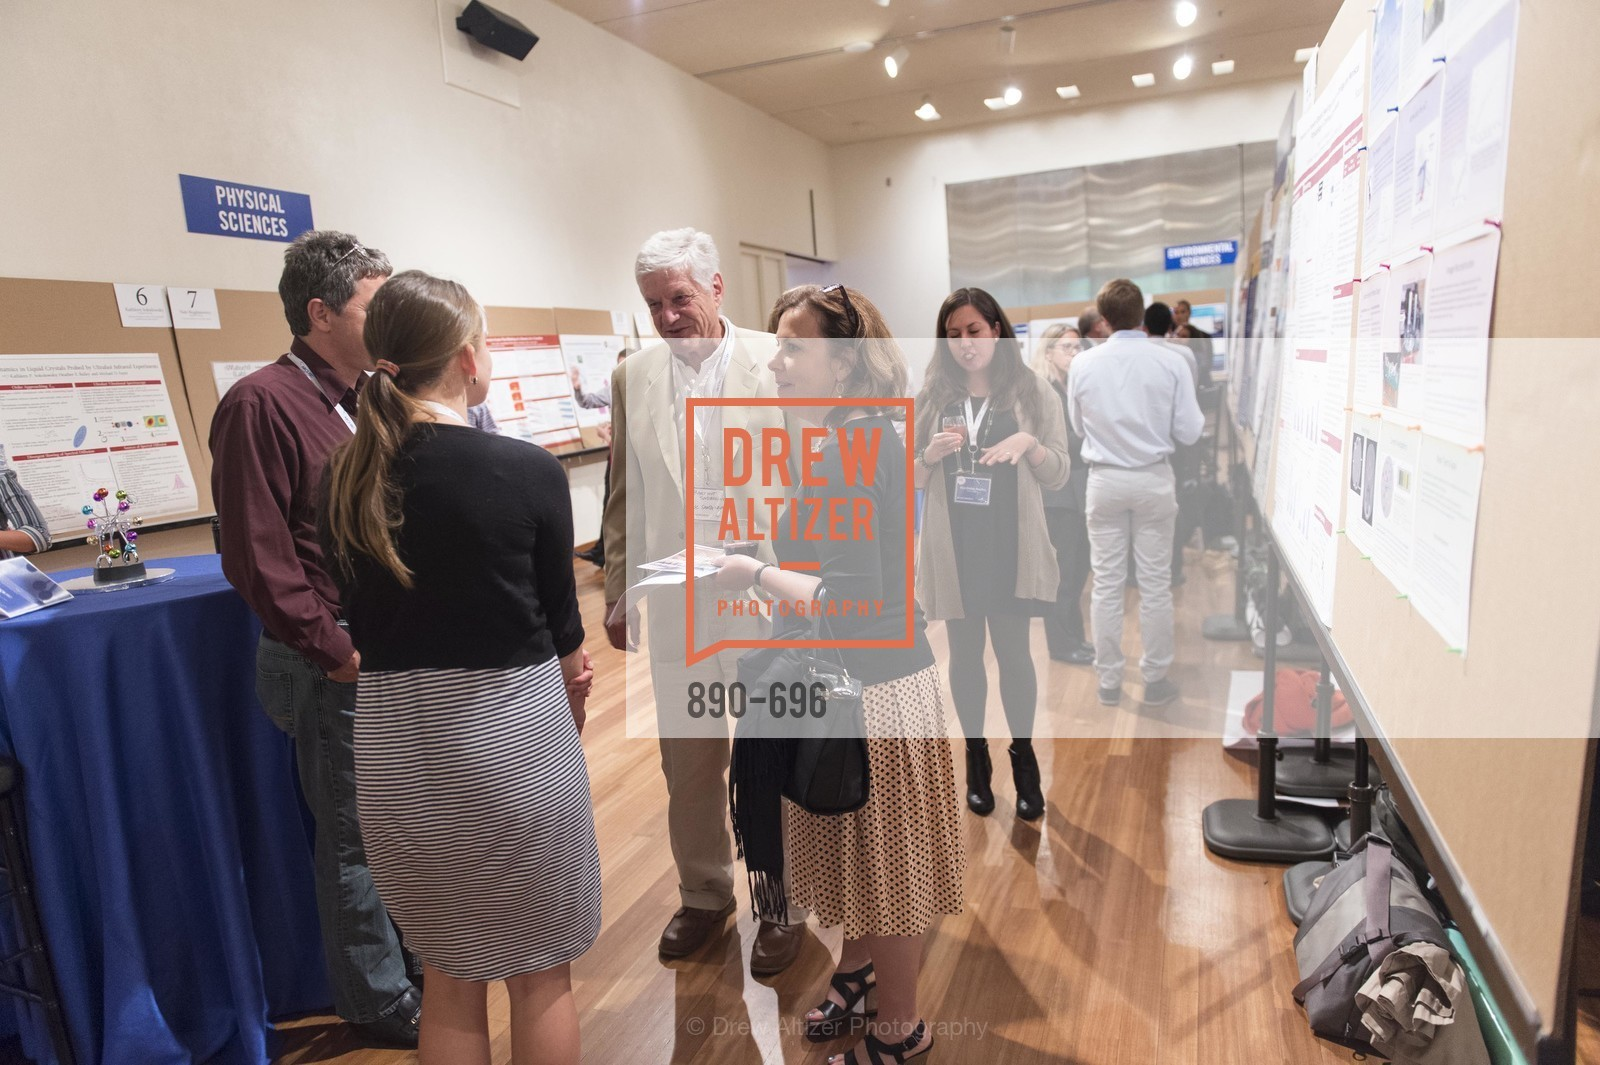 Atmosphere, ARCS FOUNDATION Scholar Symposium, US, May 5th, 2015,Drew Altizer, Drew Altizer Photography, full-service agency, private events, San Francisco photographer, photographer california